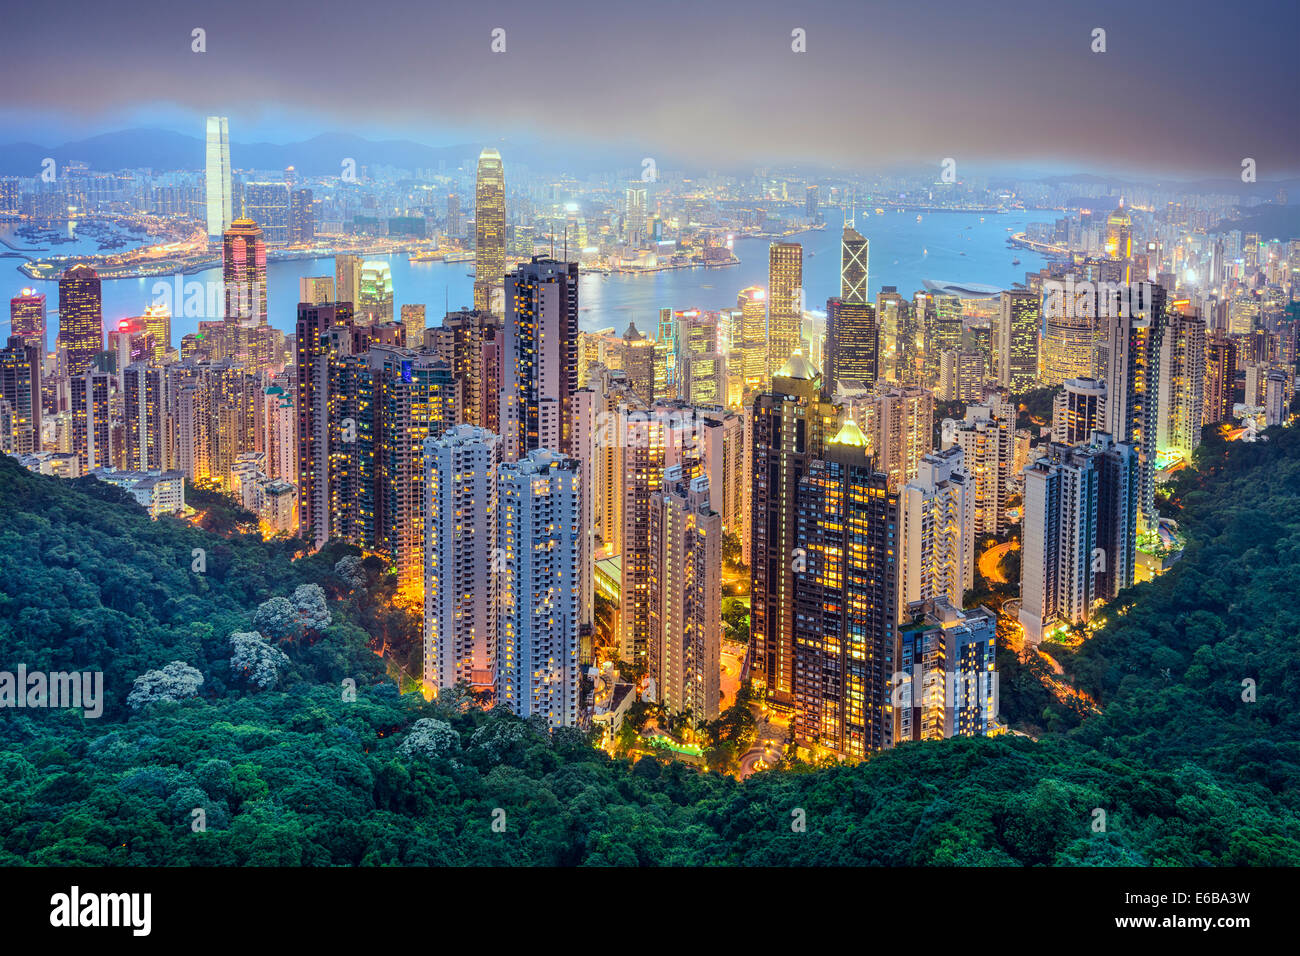 Hong Kong, China city skyline from Victoria Peak. - Stock Image